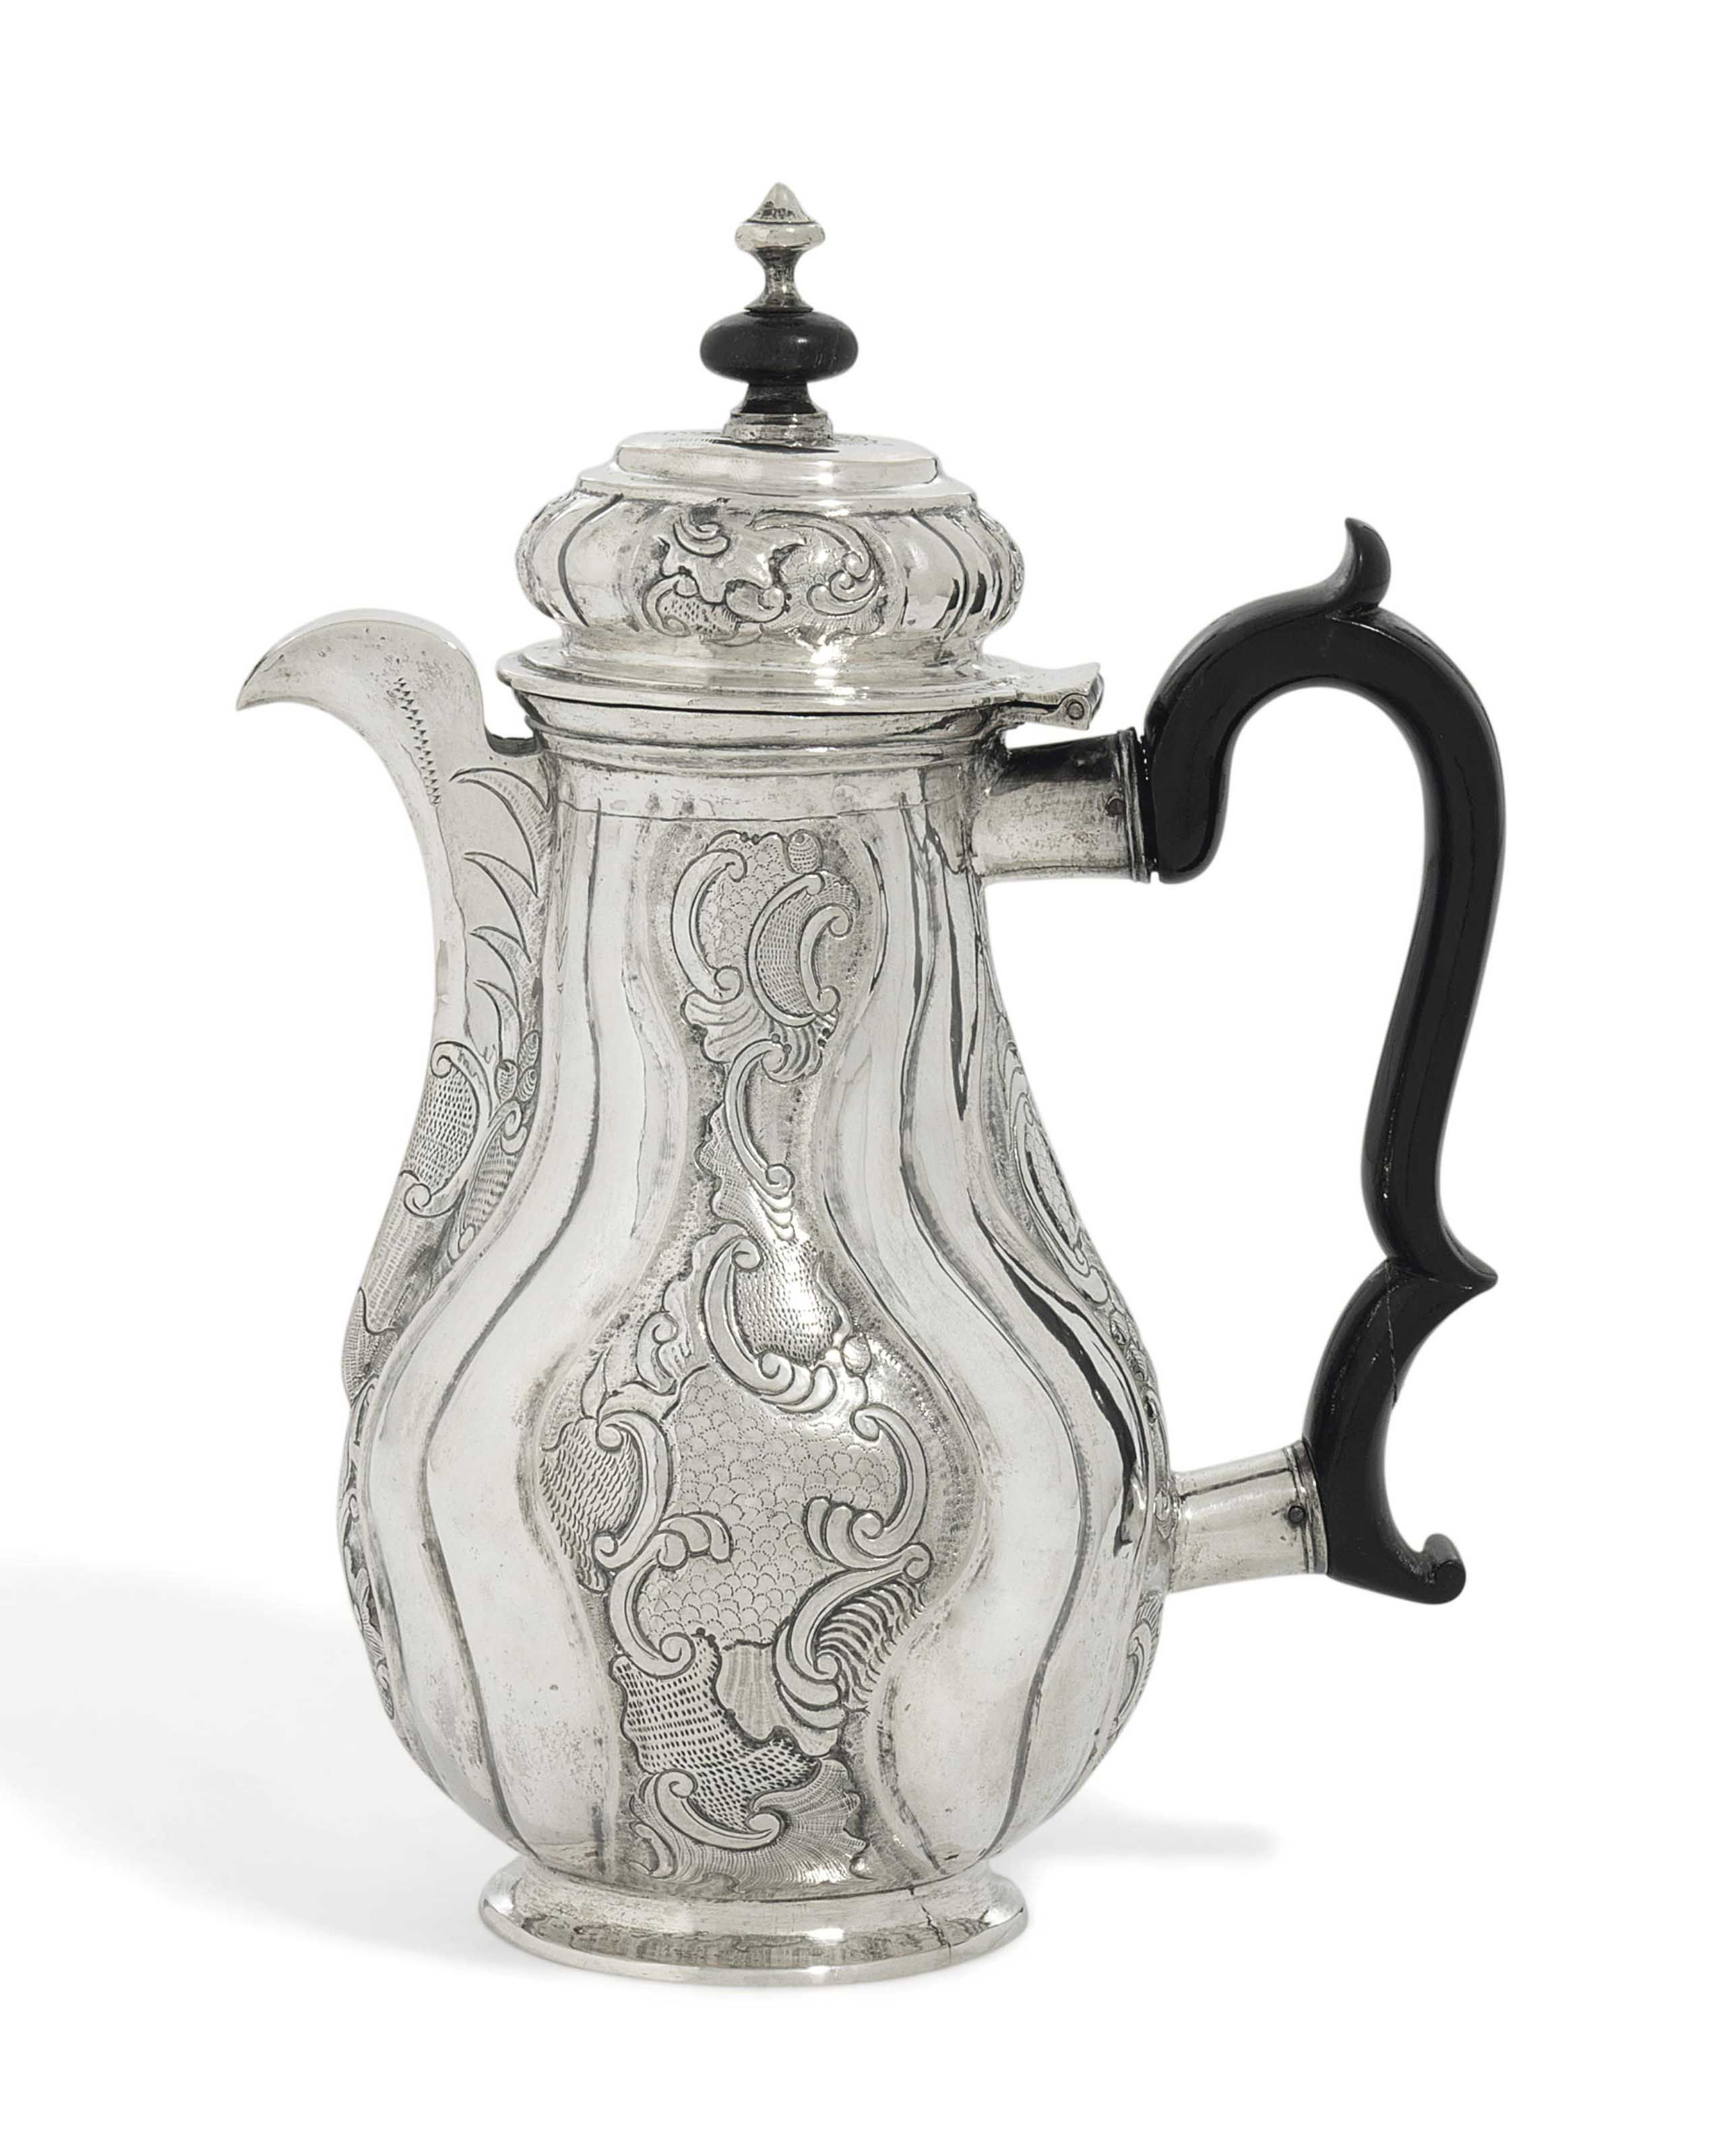 A RUSSIAN SILVER COFFEE-POT